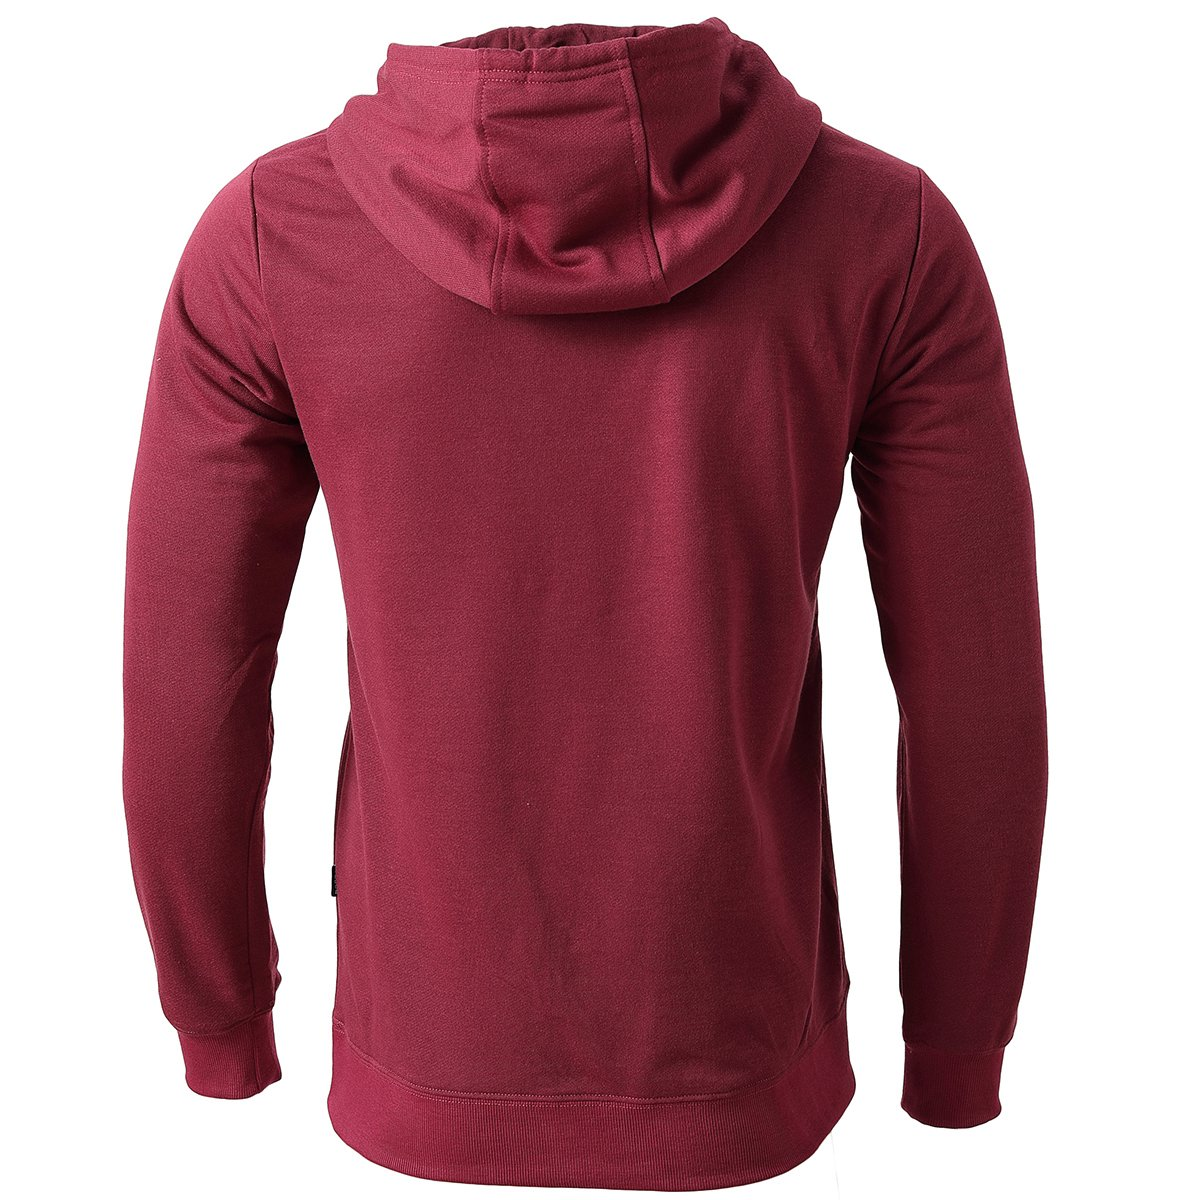 INFLATION Men's Zip-up Hoodie Long Sleeve French Terry Lightweight Basic Zip-up Hoodie Jacket 8 Color Choices by INFLATION (Image #3)